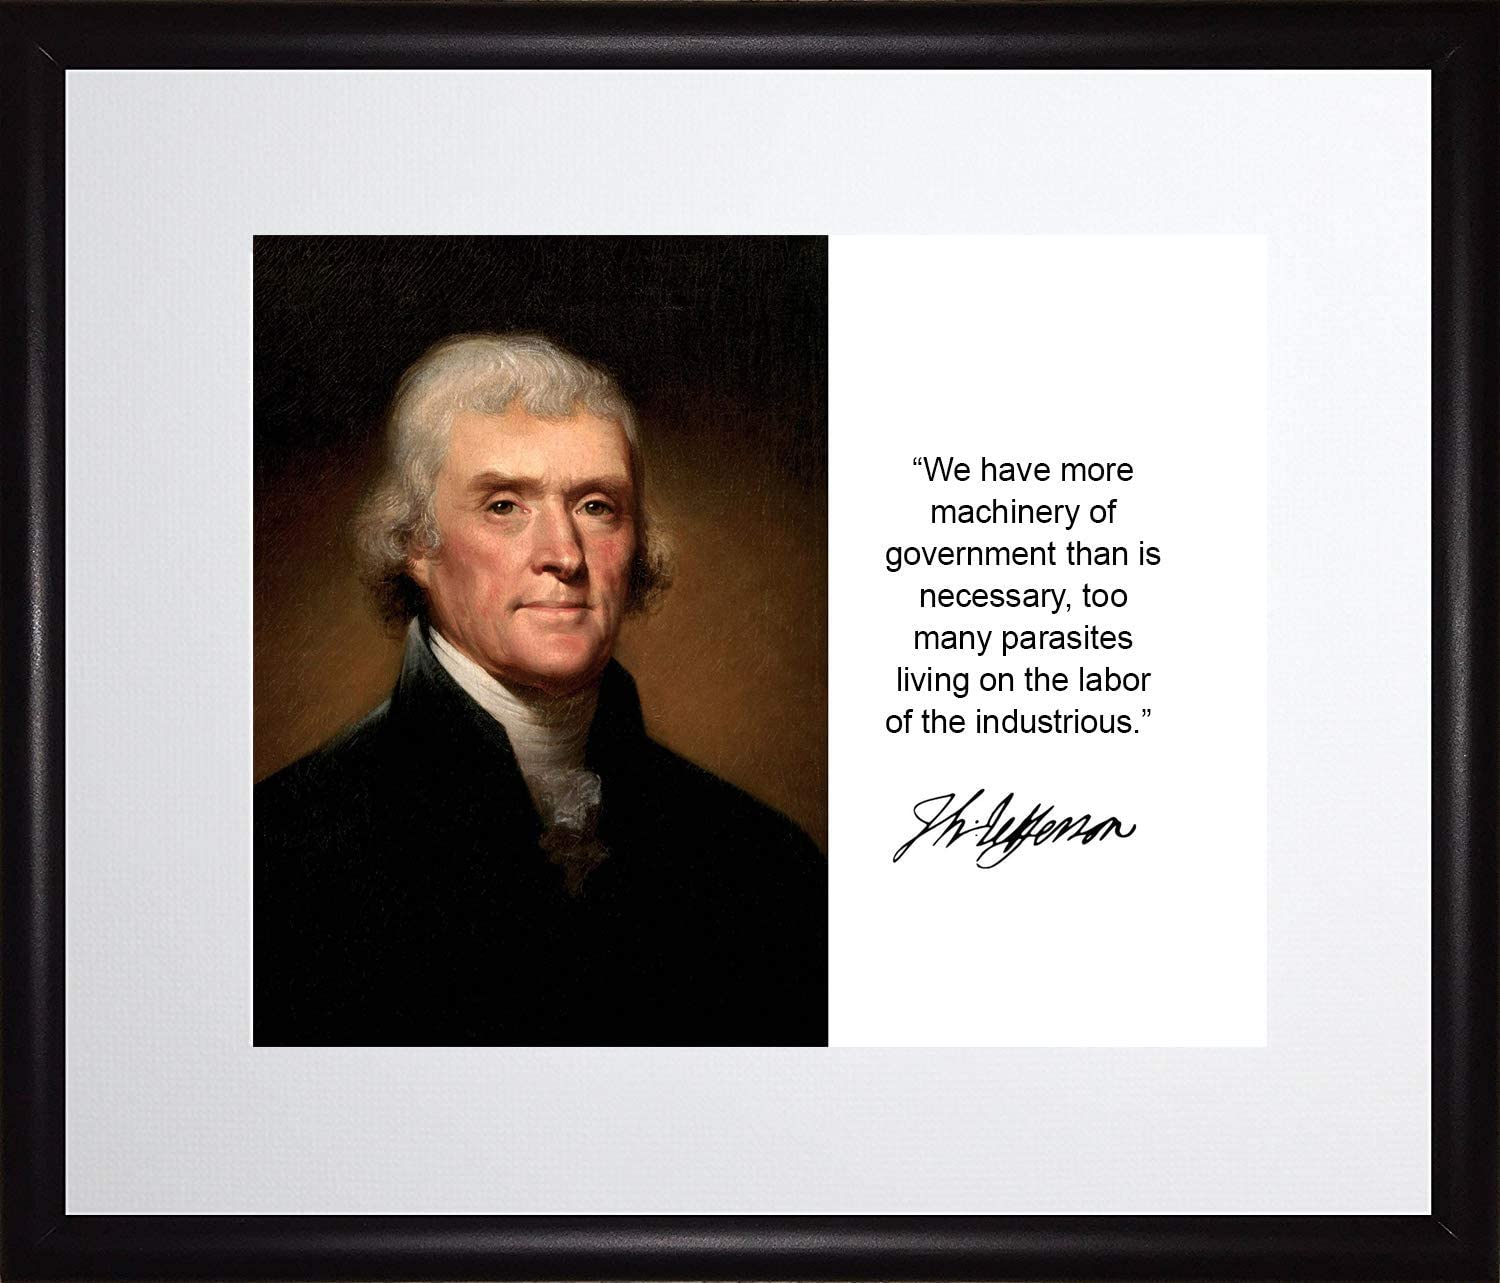 B01429Y71C Thomas Jefferson We Have More Government Quote Autograph 11x14 Matted to 8x10 Framed Picture 71MZFWwP4ML